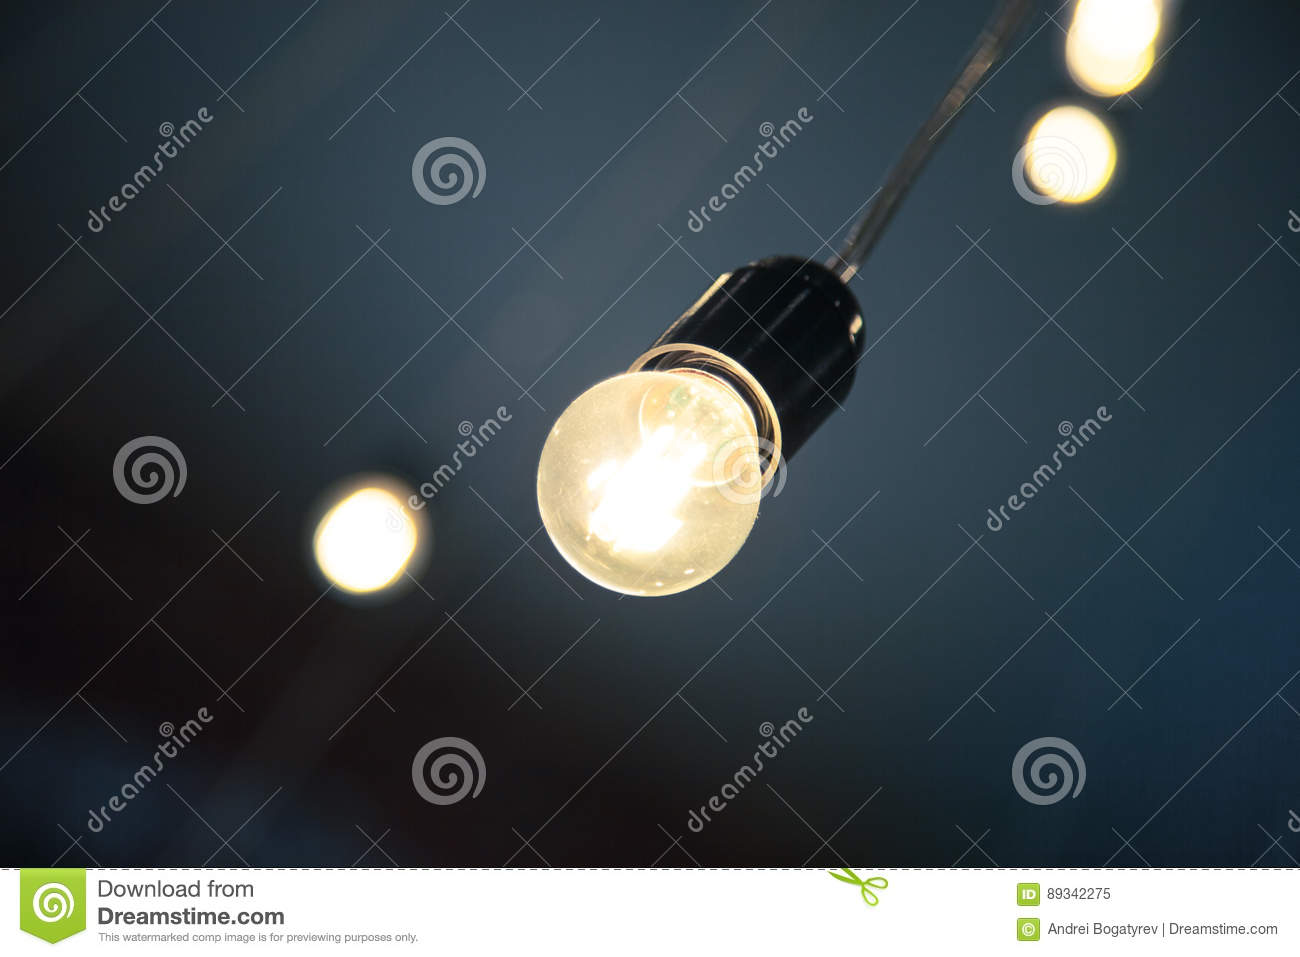 Hanging Retro Light Bulb In The Cafe Or Coffee Shop Interior Design